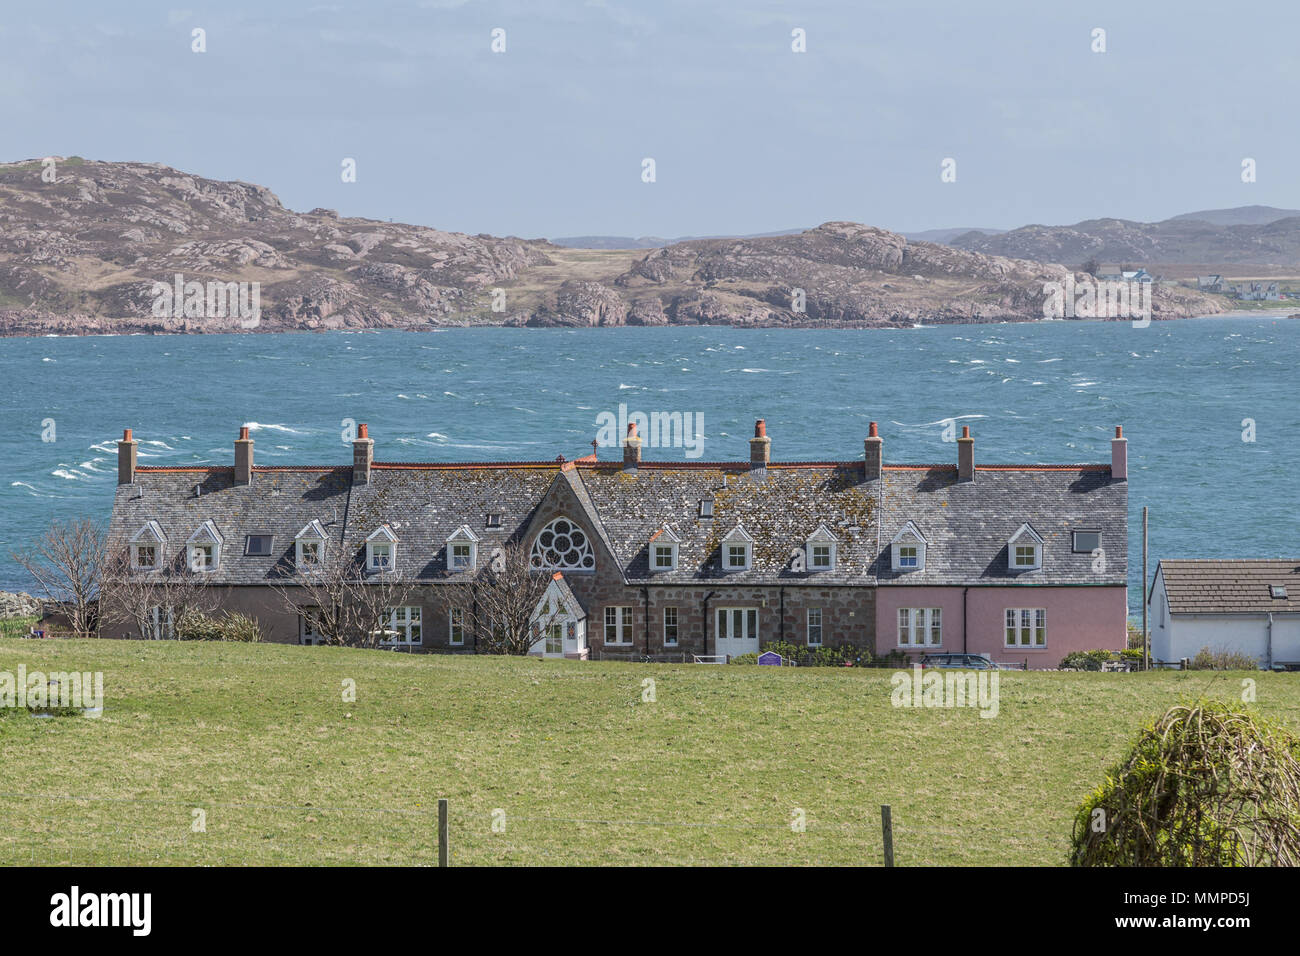 Houses near Iona Abbey on the Isle of Iona, Argyll and Bute on the Inner Hebrides, Scotland, UK with the Isle of Mull and Fionnphort in the background - Stock Image